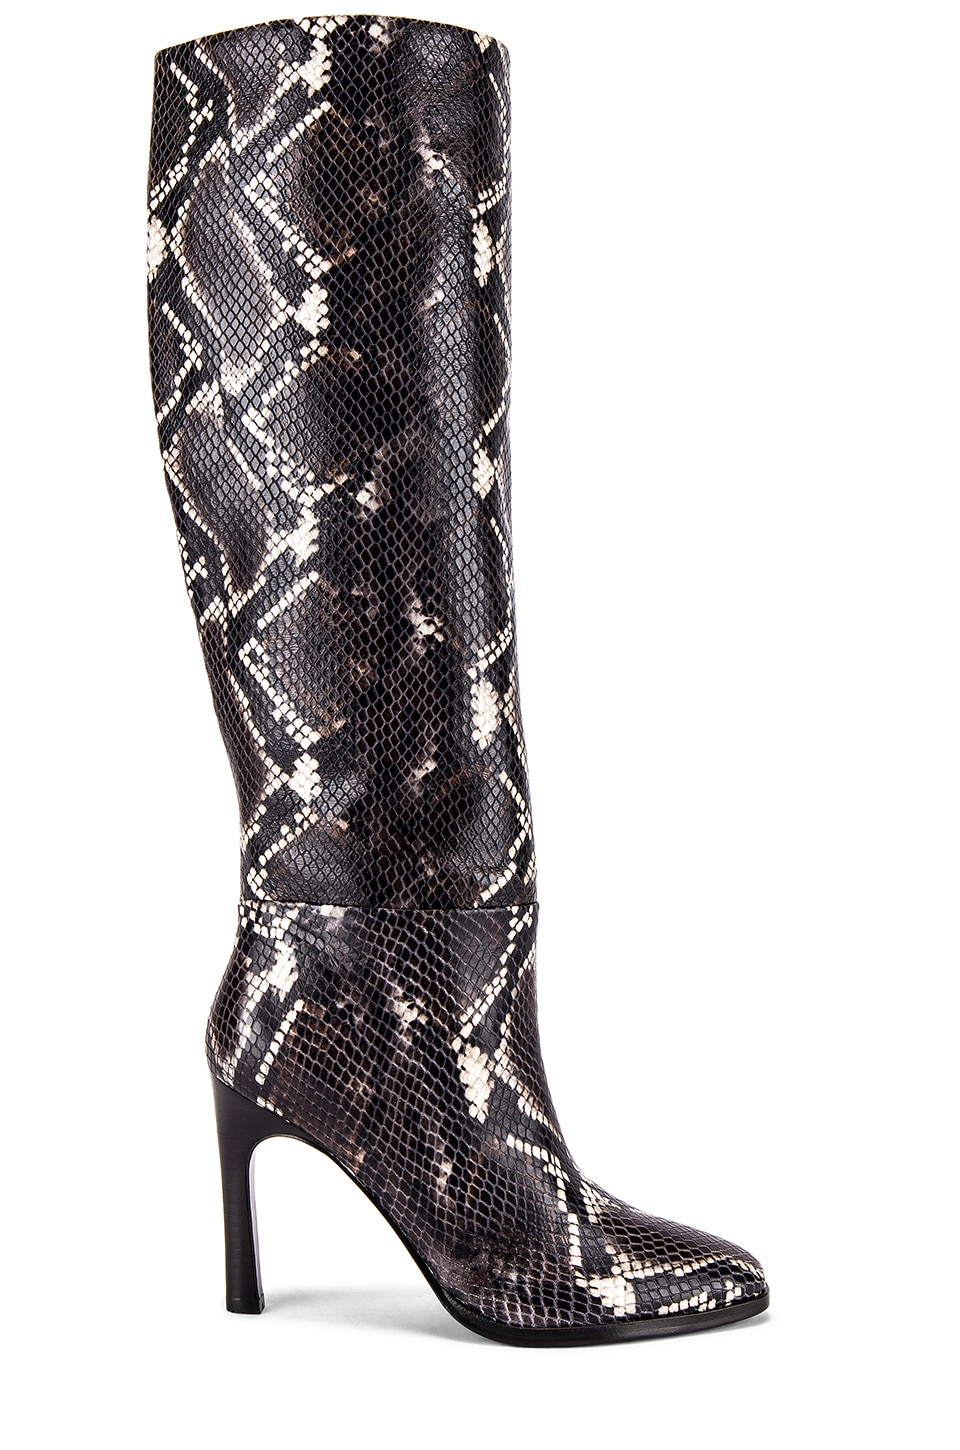 Sigerson Morrison Kailey Boot in Rovere